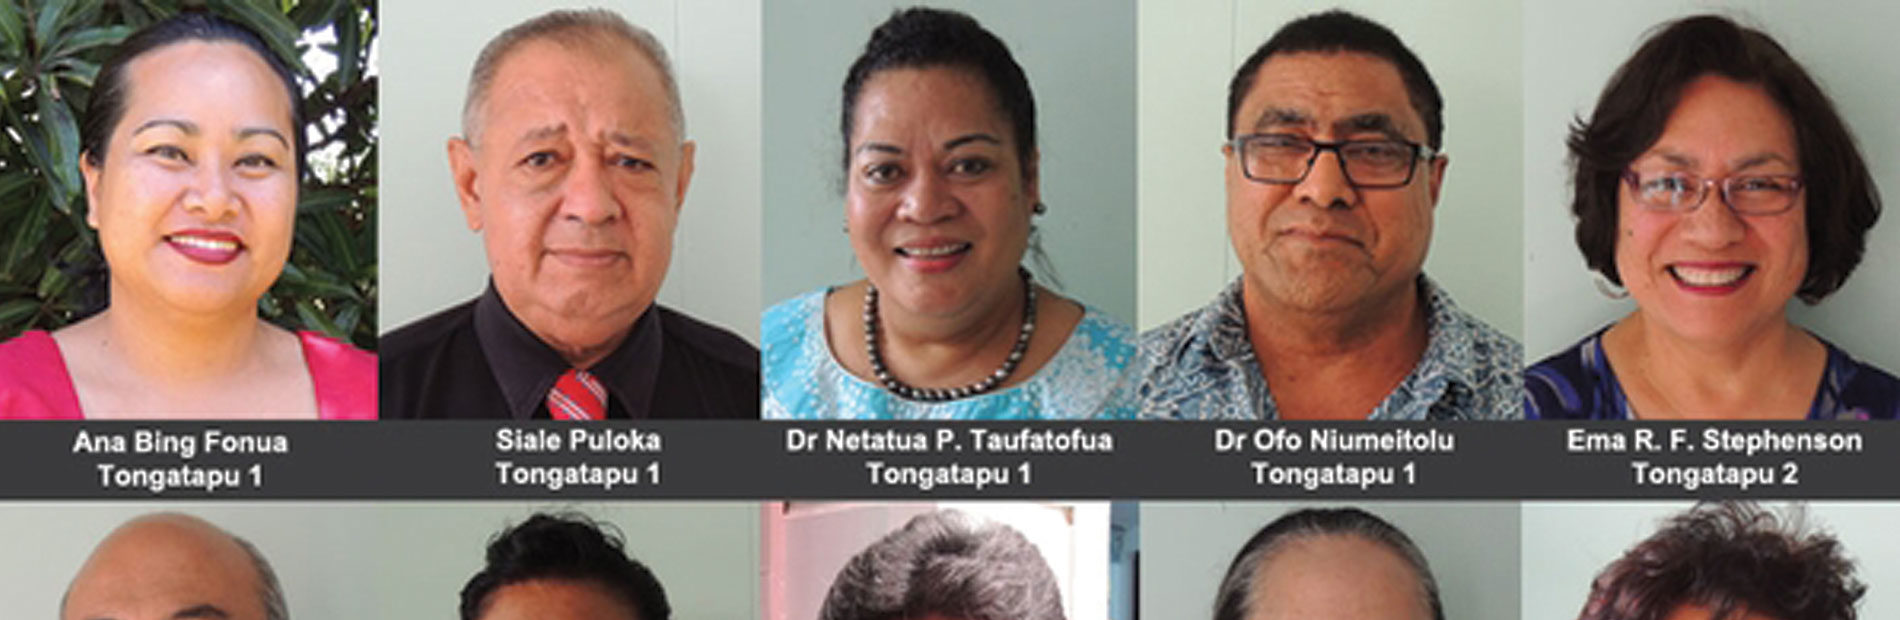 Tonga: 11 women registered out of 39 candidates so far